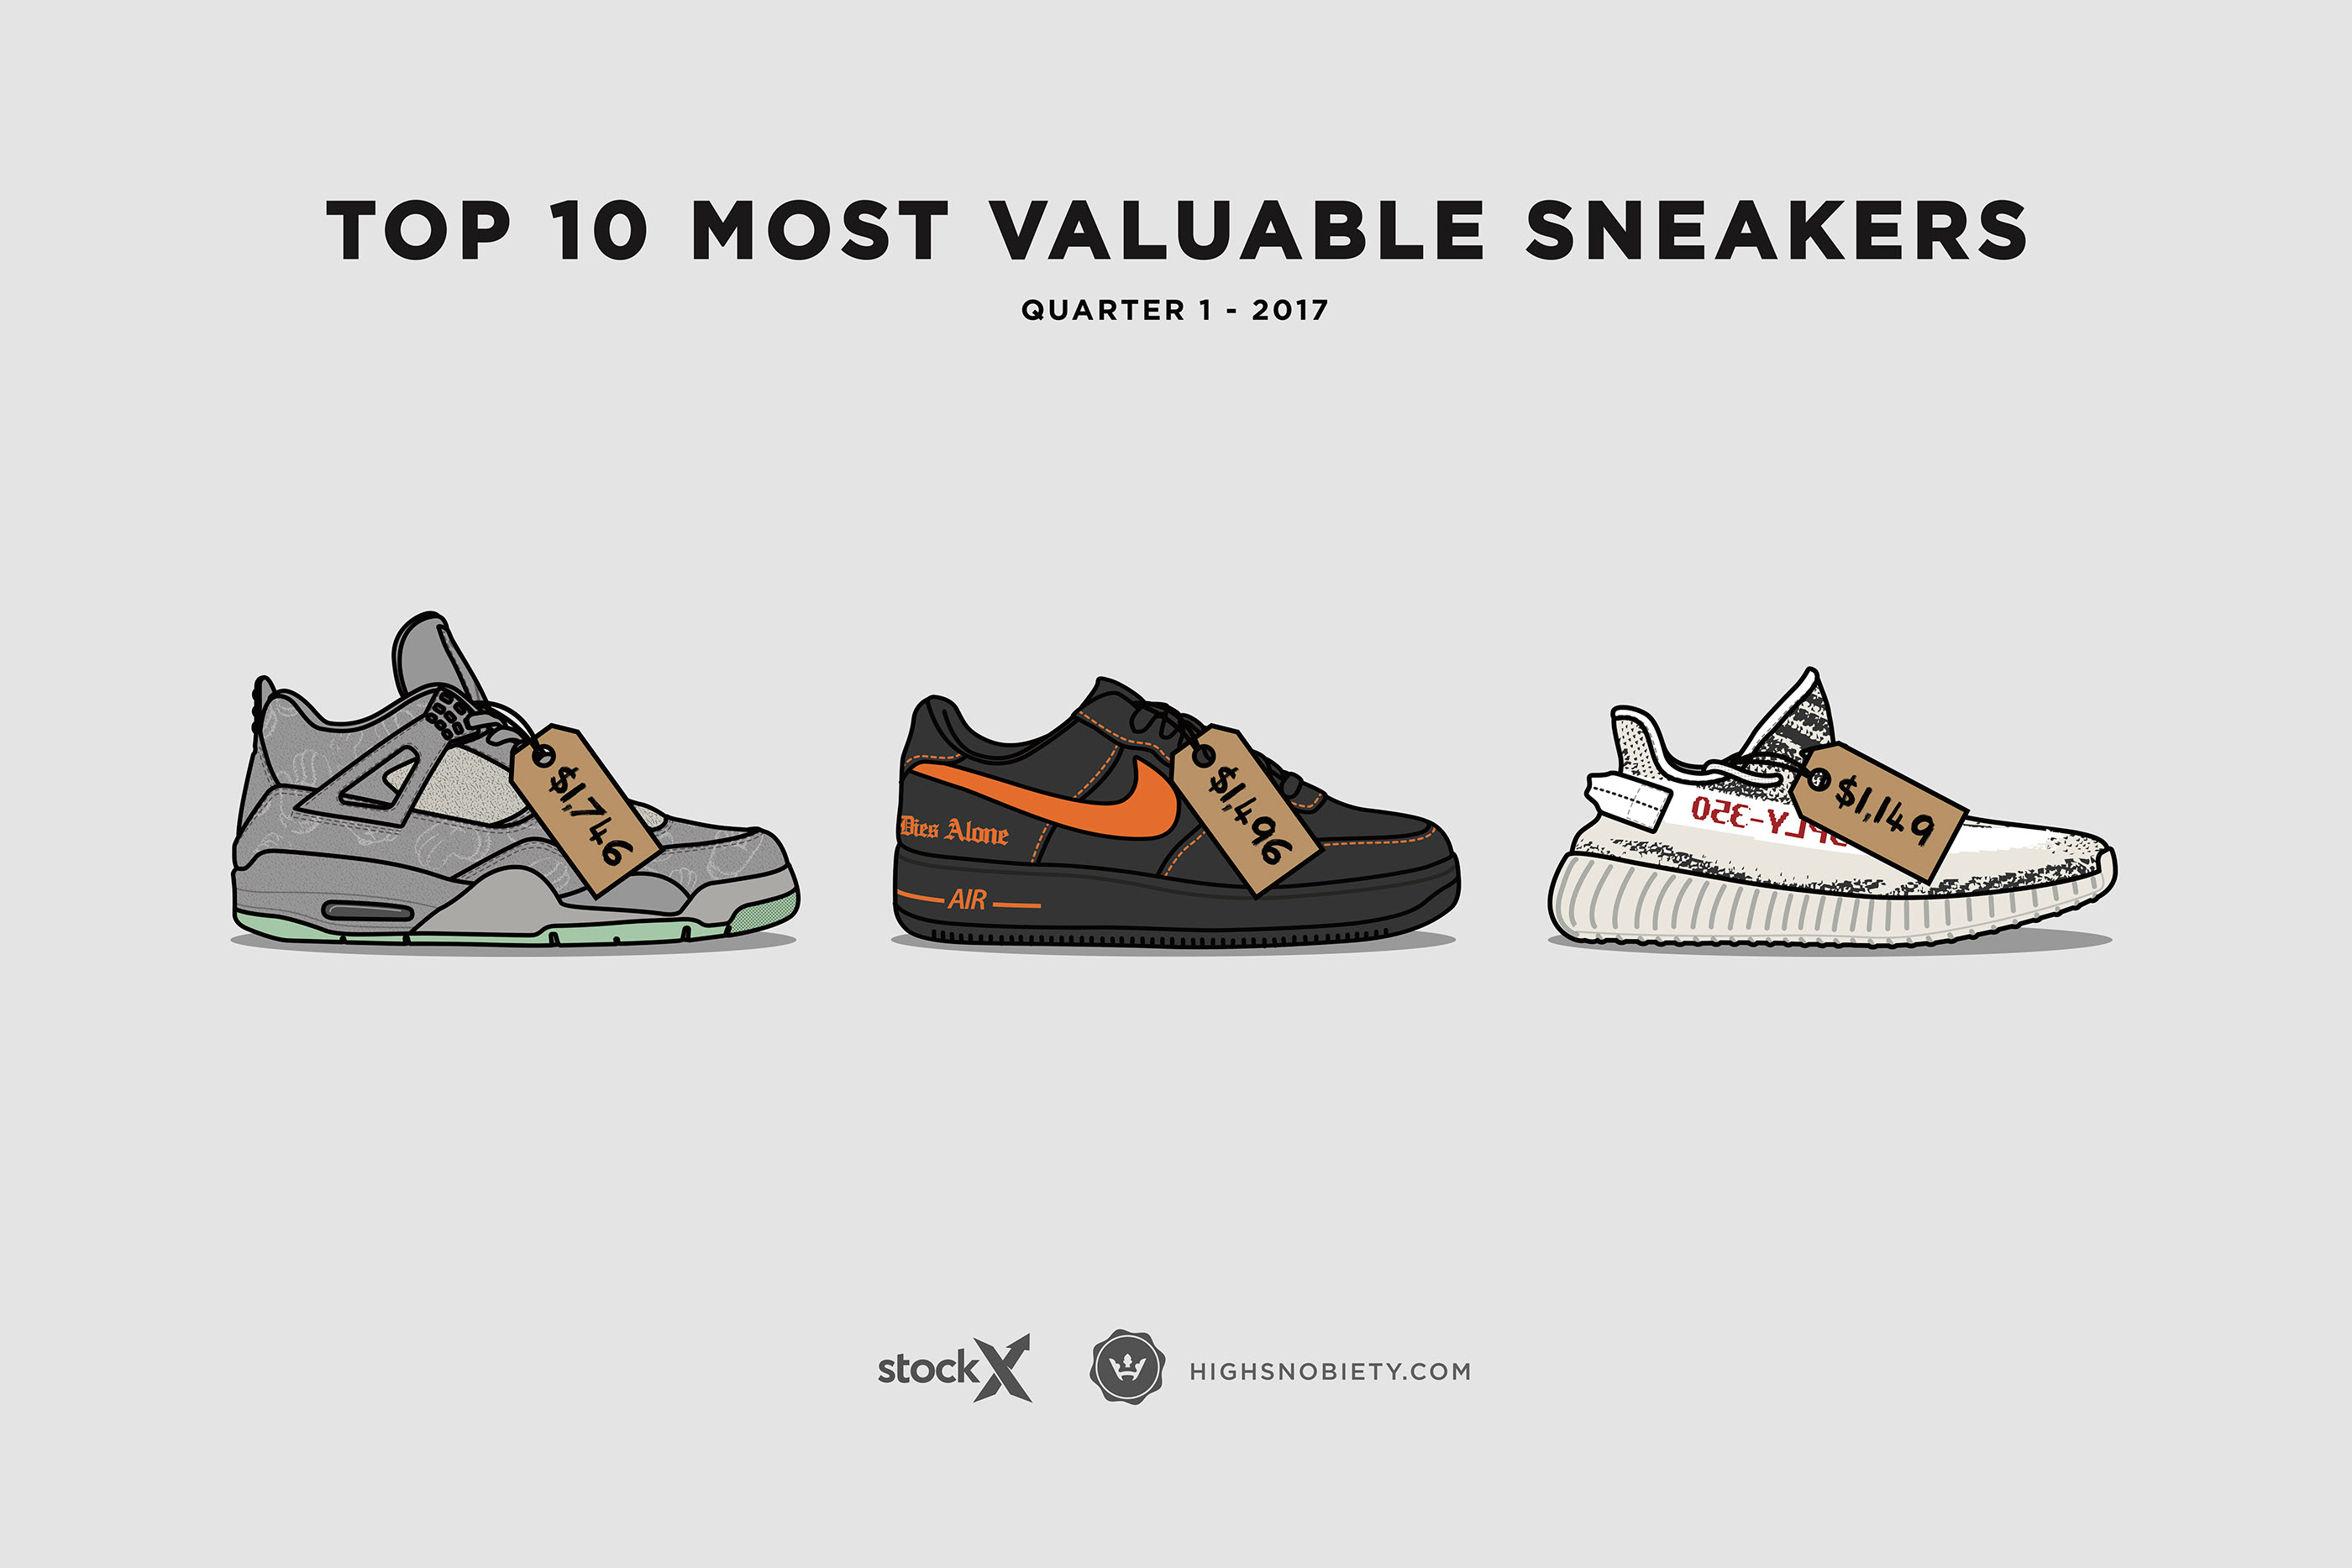 792ca084 Most Valuable Sneakers | Highsnobiety on Behance